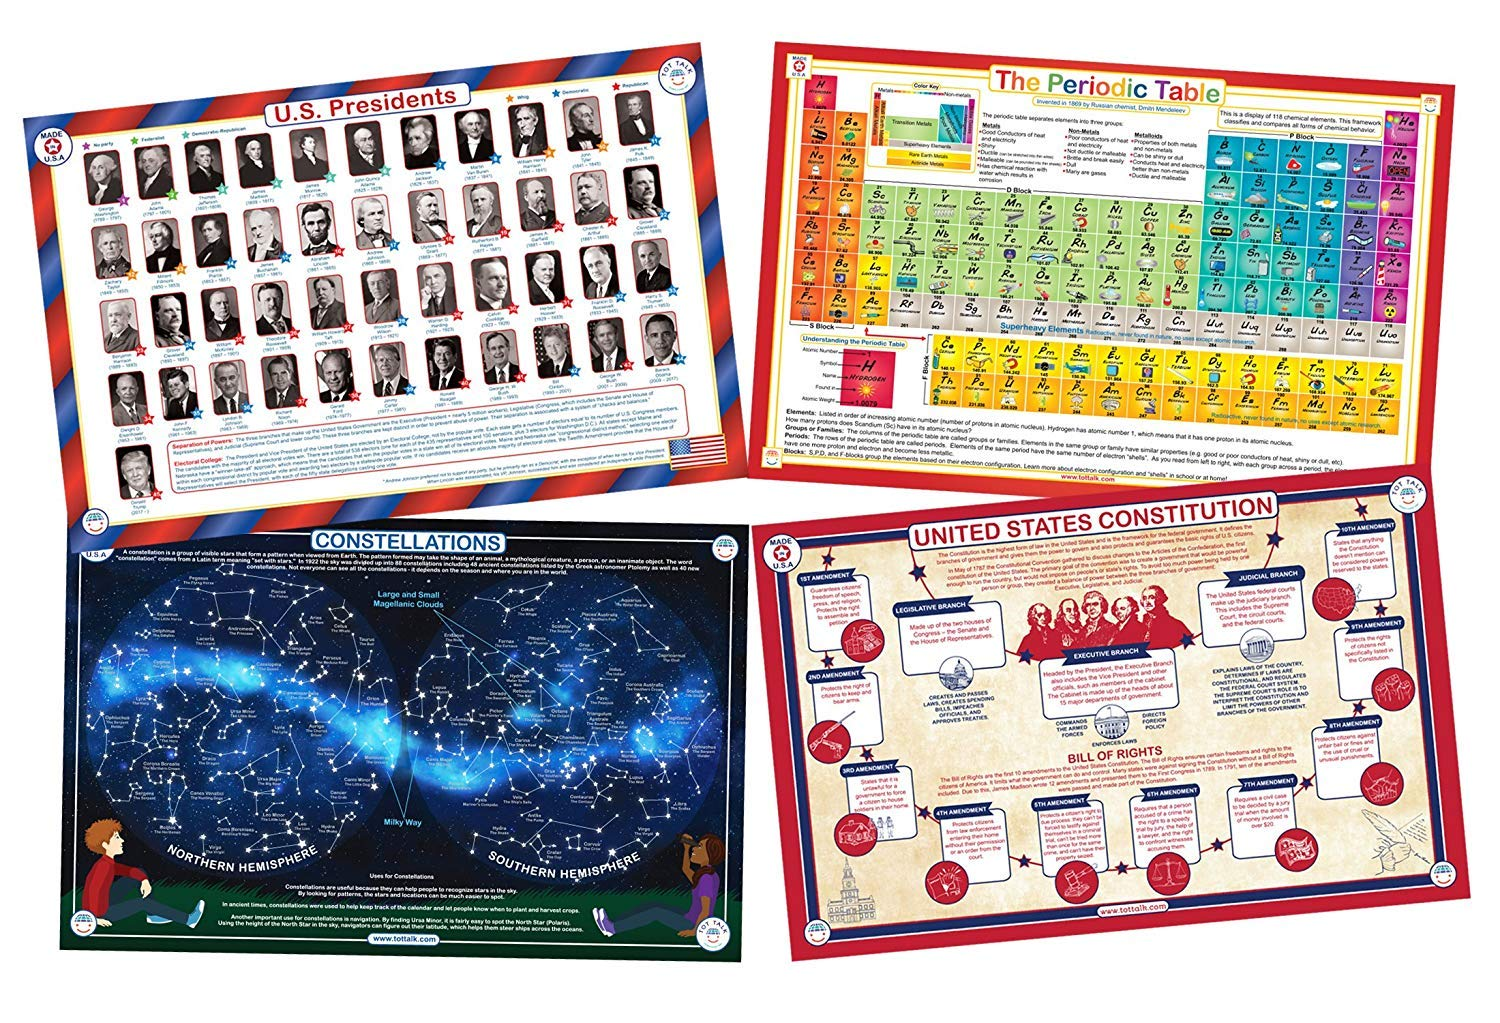 Tot Talk Educational Placemats for Teens- Set of 4 Table Mats: Presidents, Periodic Table, U.S Constitution, Constellations- Reversible Activities- Waterproof, Washable, Wipeable, Durable, USA-Made